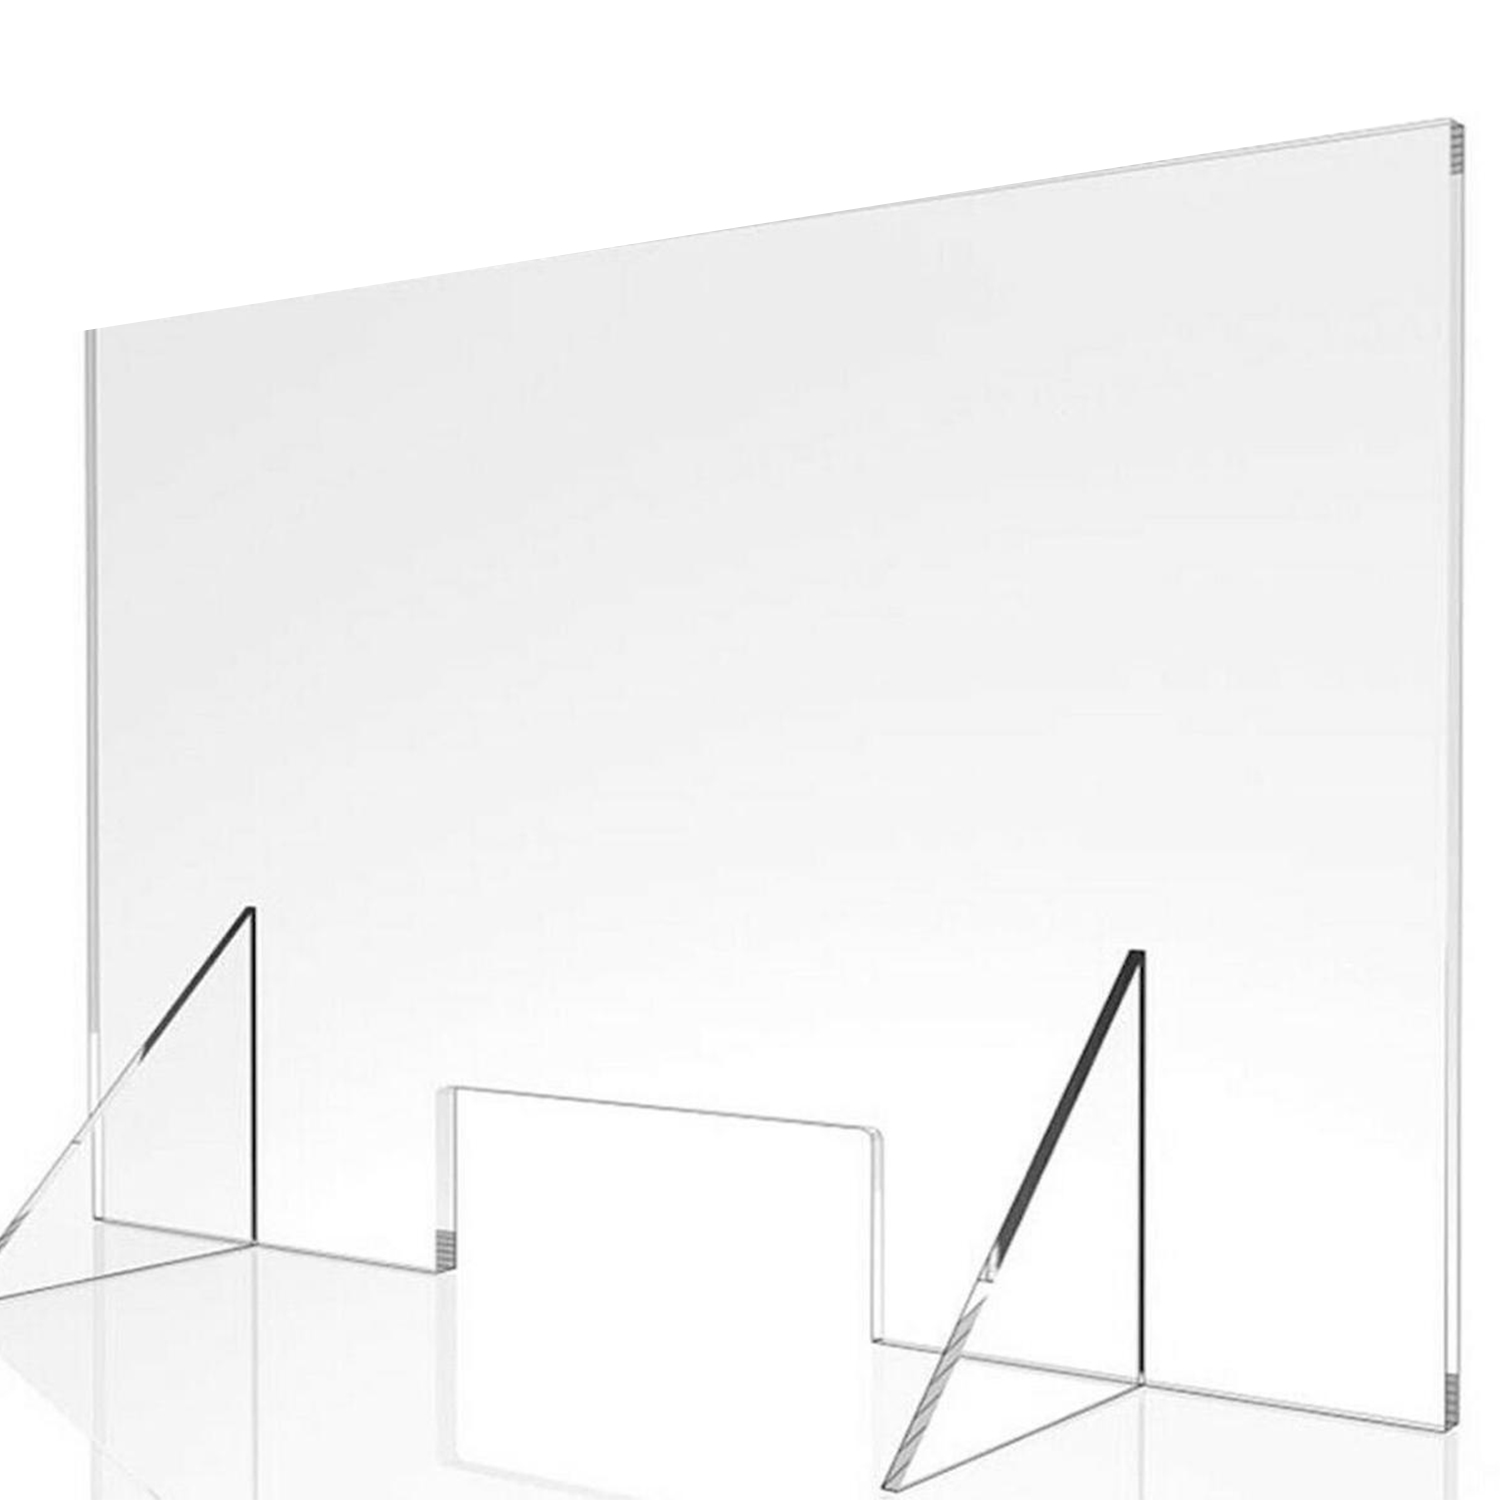 Sneeze Guard USA MADE Acrylic Protective shield for Reception Desk Cashier Protection Barrier Shield Checkout Counter